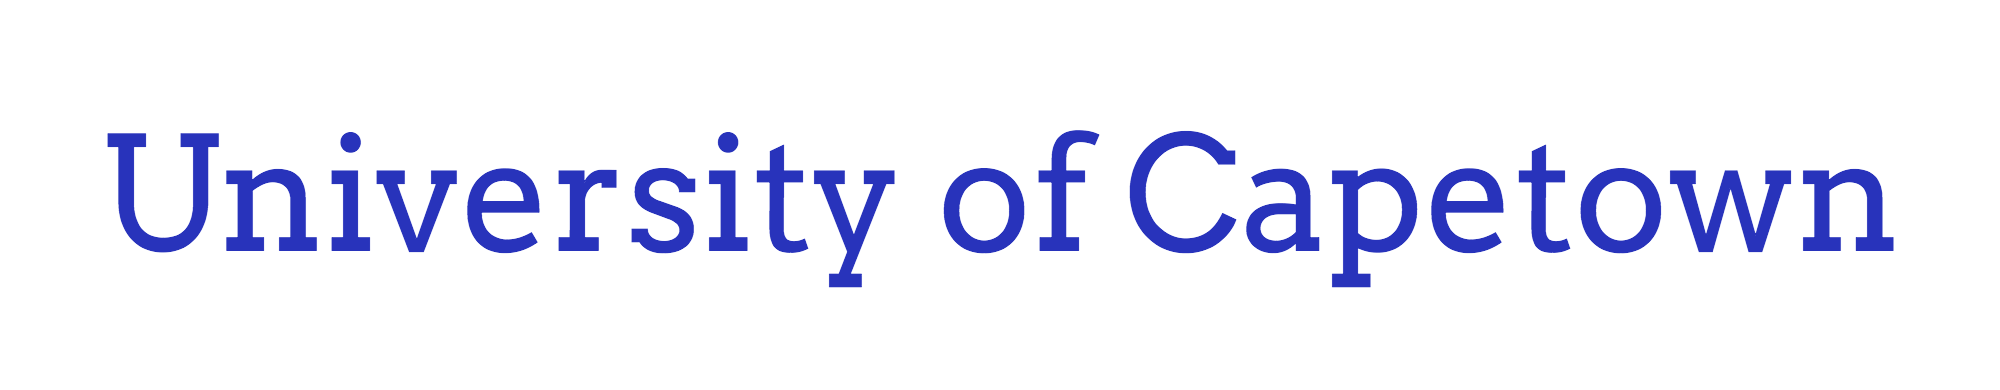 University of Capetown-logo.png